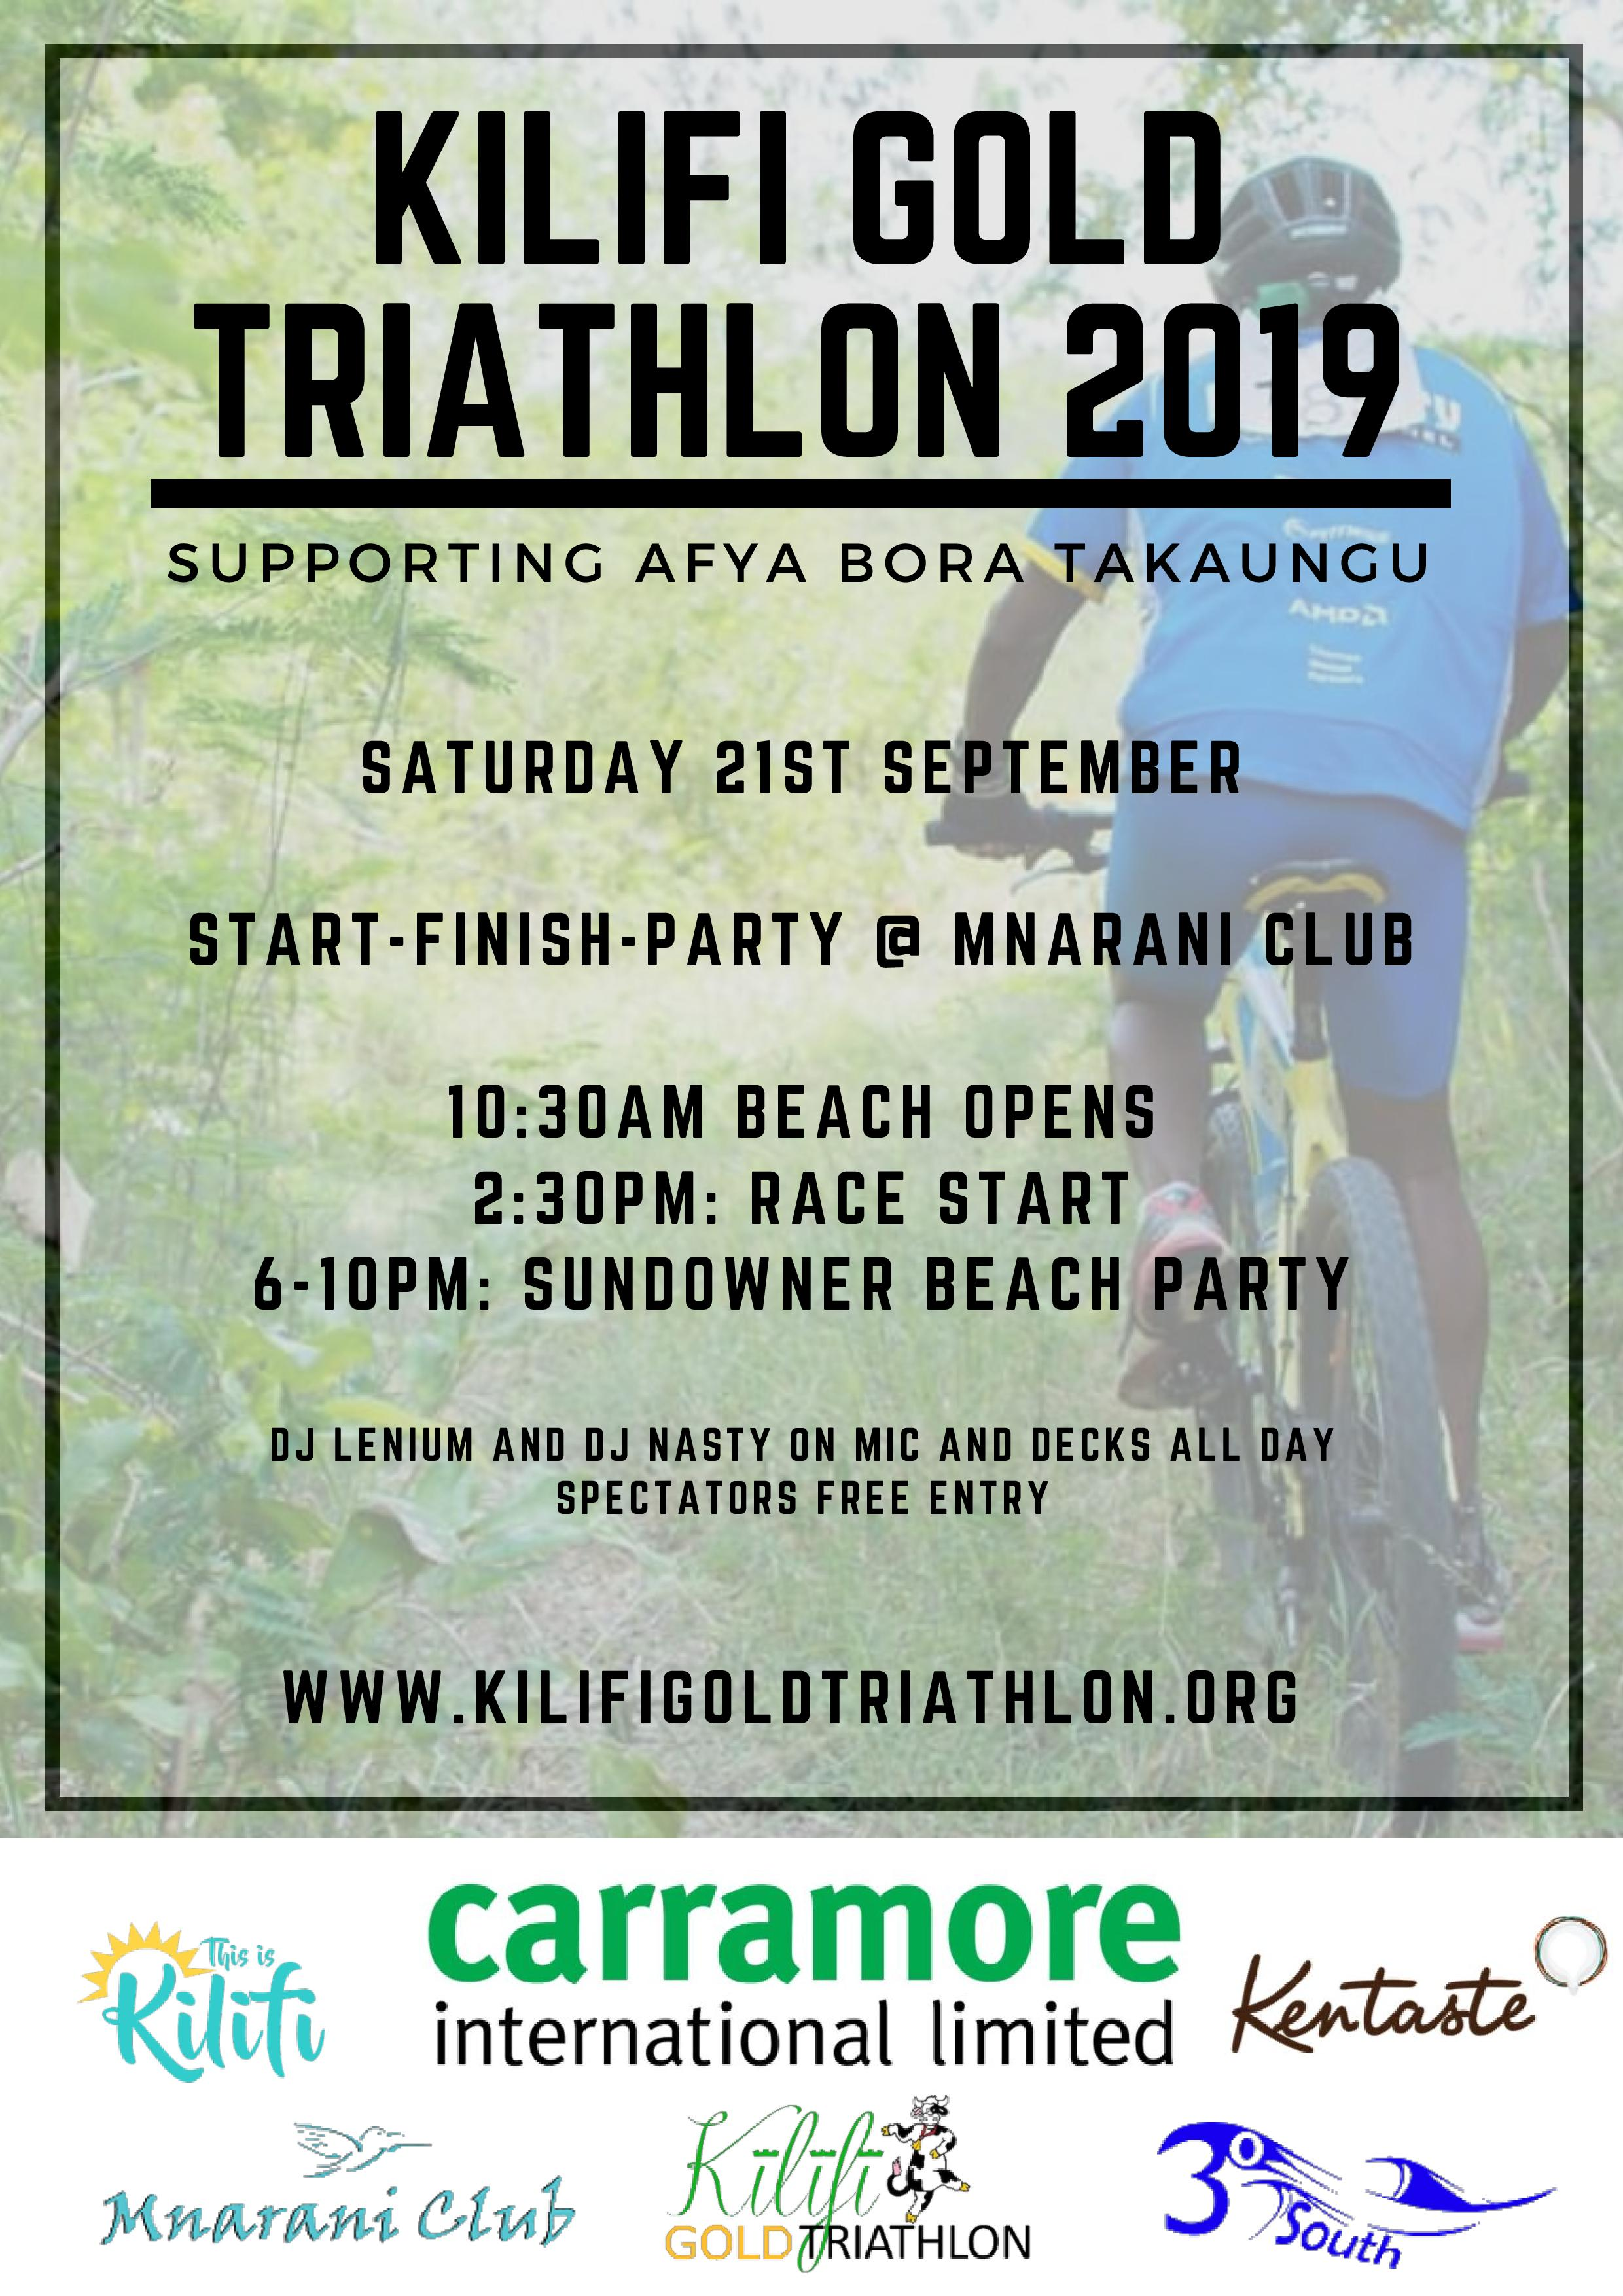 Kilifi Gold Triathlon